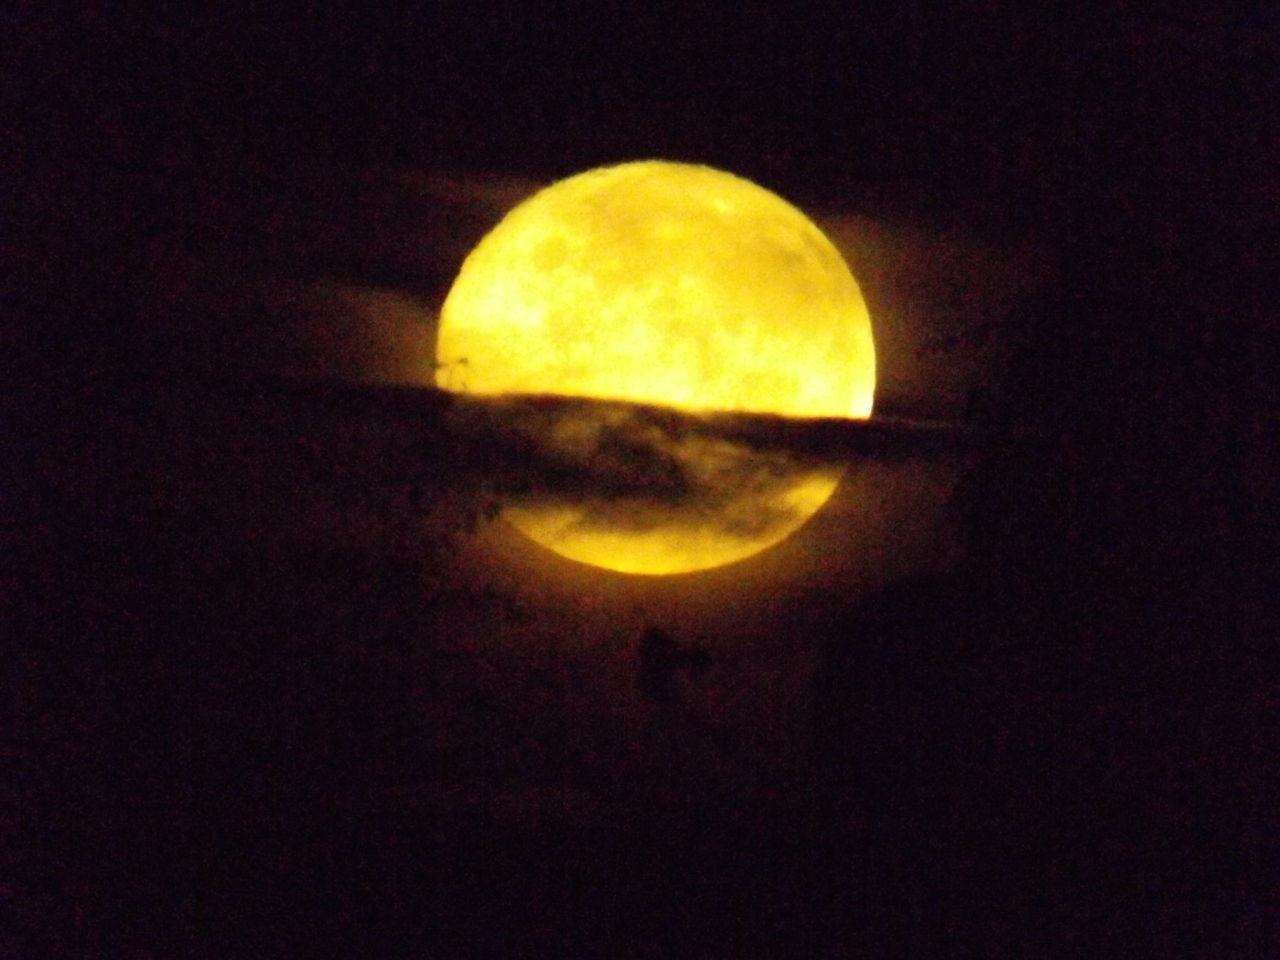 moon, astronomy, night, moon surface, beauty in nature, planetary moon, nature, scenics, space exploration, space, half moon, tranquil scene, tranquility, crescent, no people, outdoors, yellow, solar eclipse, clear sky, sky